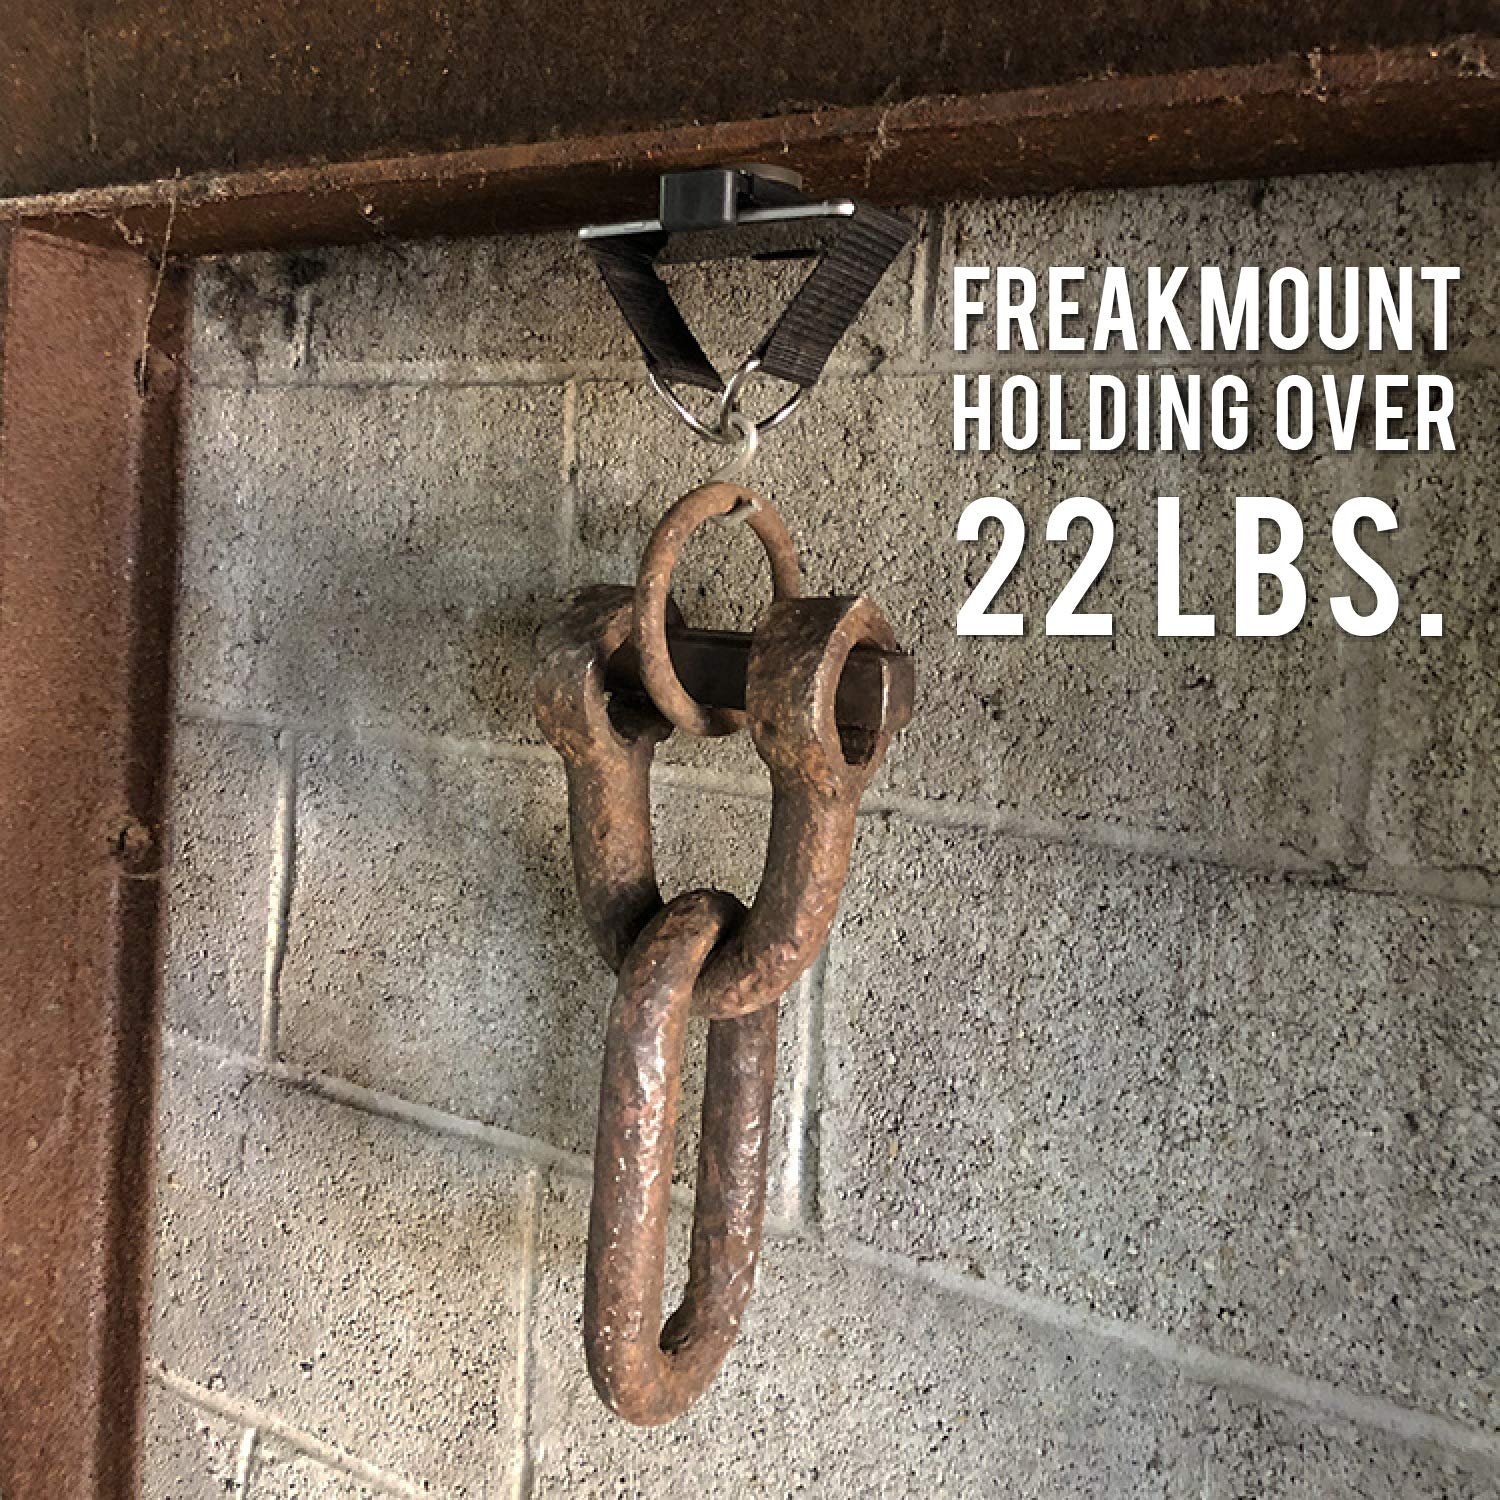 FREAKMOUNT - Freaky Strong Magnetic Phone Mount - Designed for Motorcycles - Use Anywhere - Perfect for The Gym - The Ultimate Wireless Earphone Companion - Easy, Secure, Safe by FREAKMOUNT